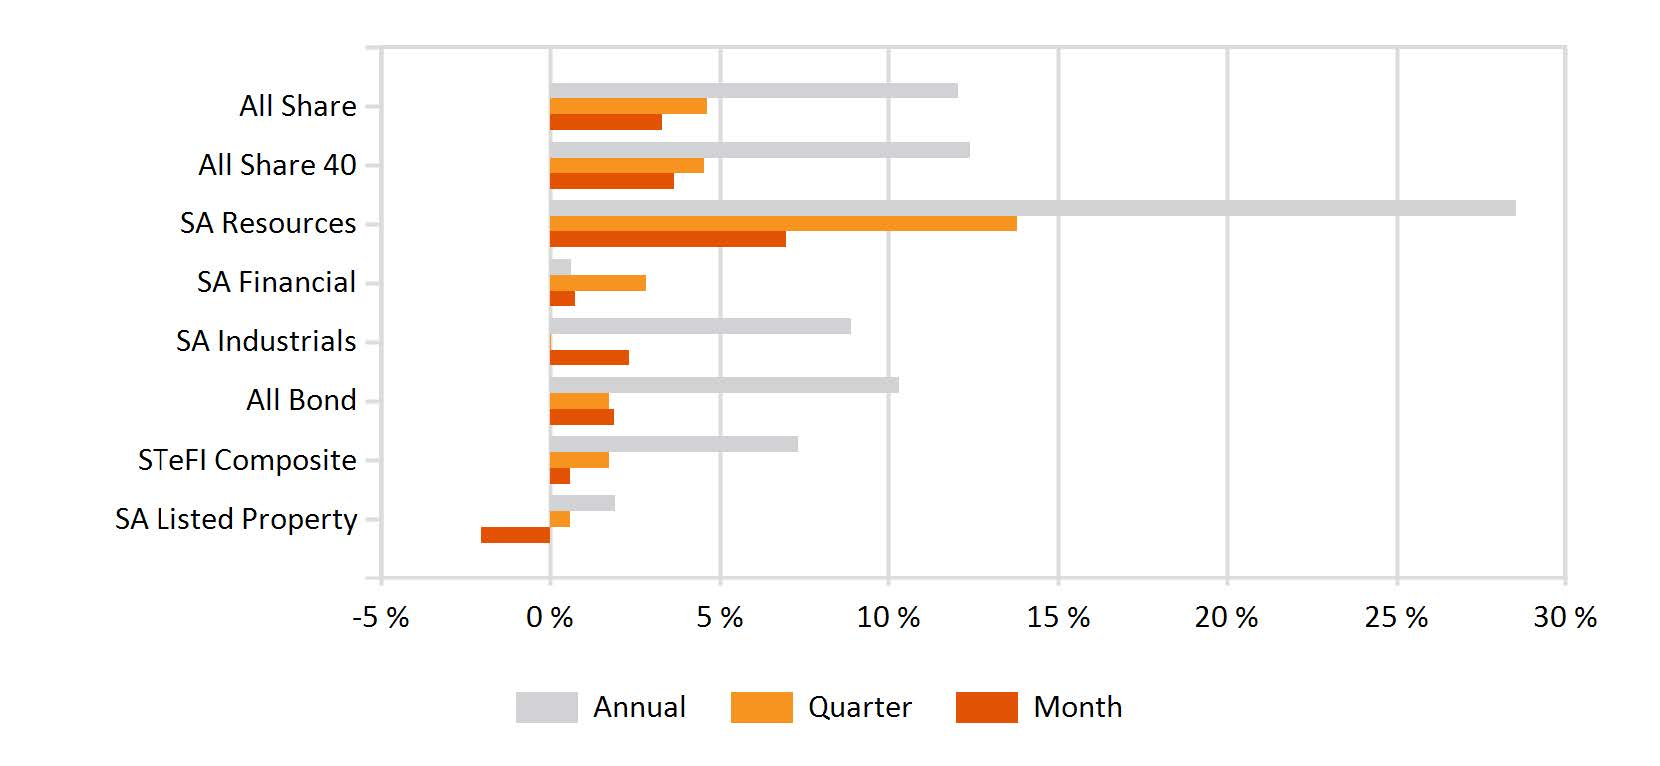 Returns of FTSEJSE sectors and indices